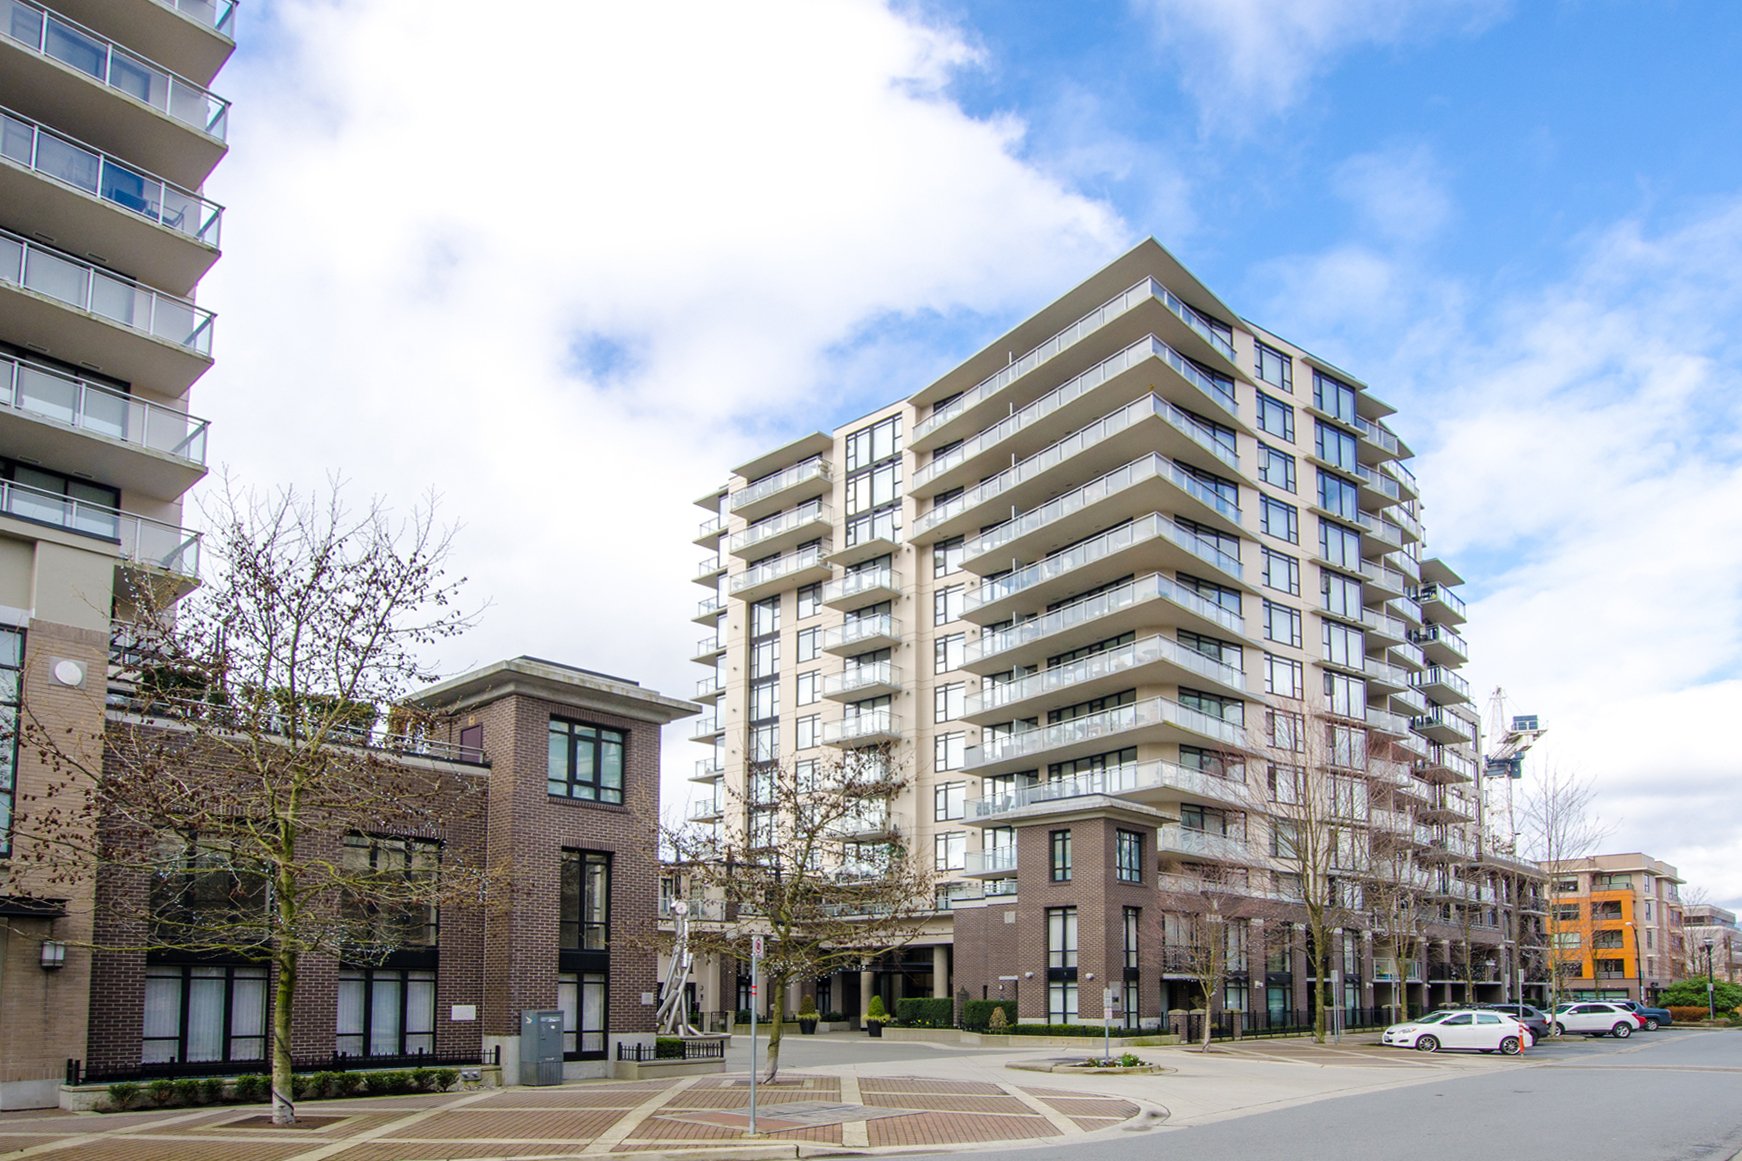 Time East - 155 W 1st St | Condos For Sale + Listing Alerts